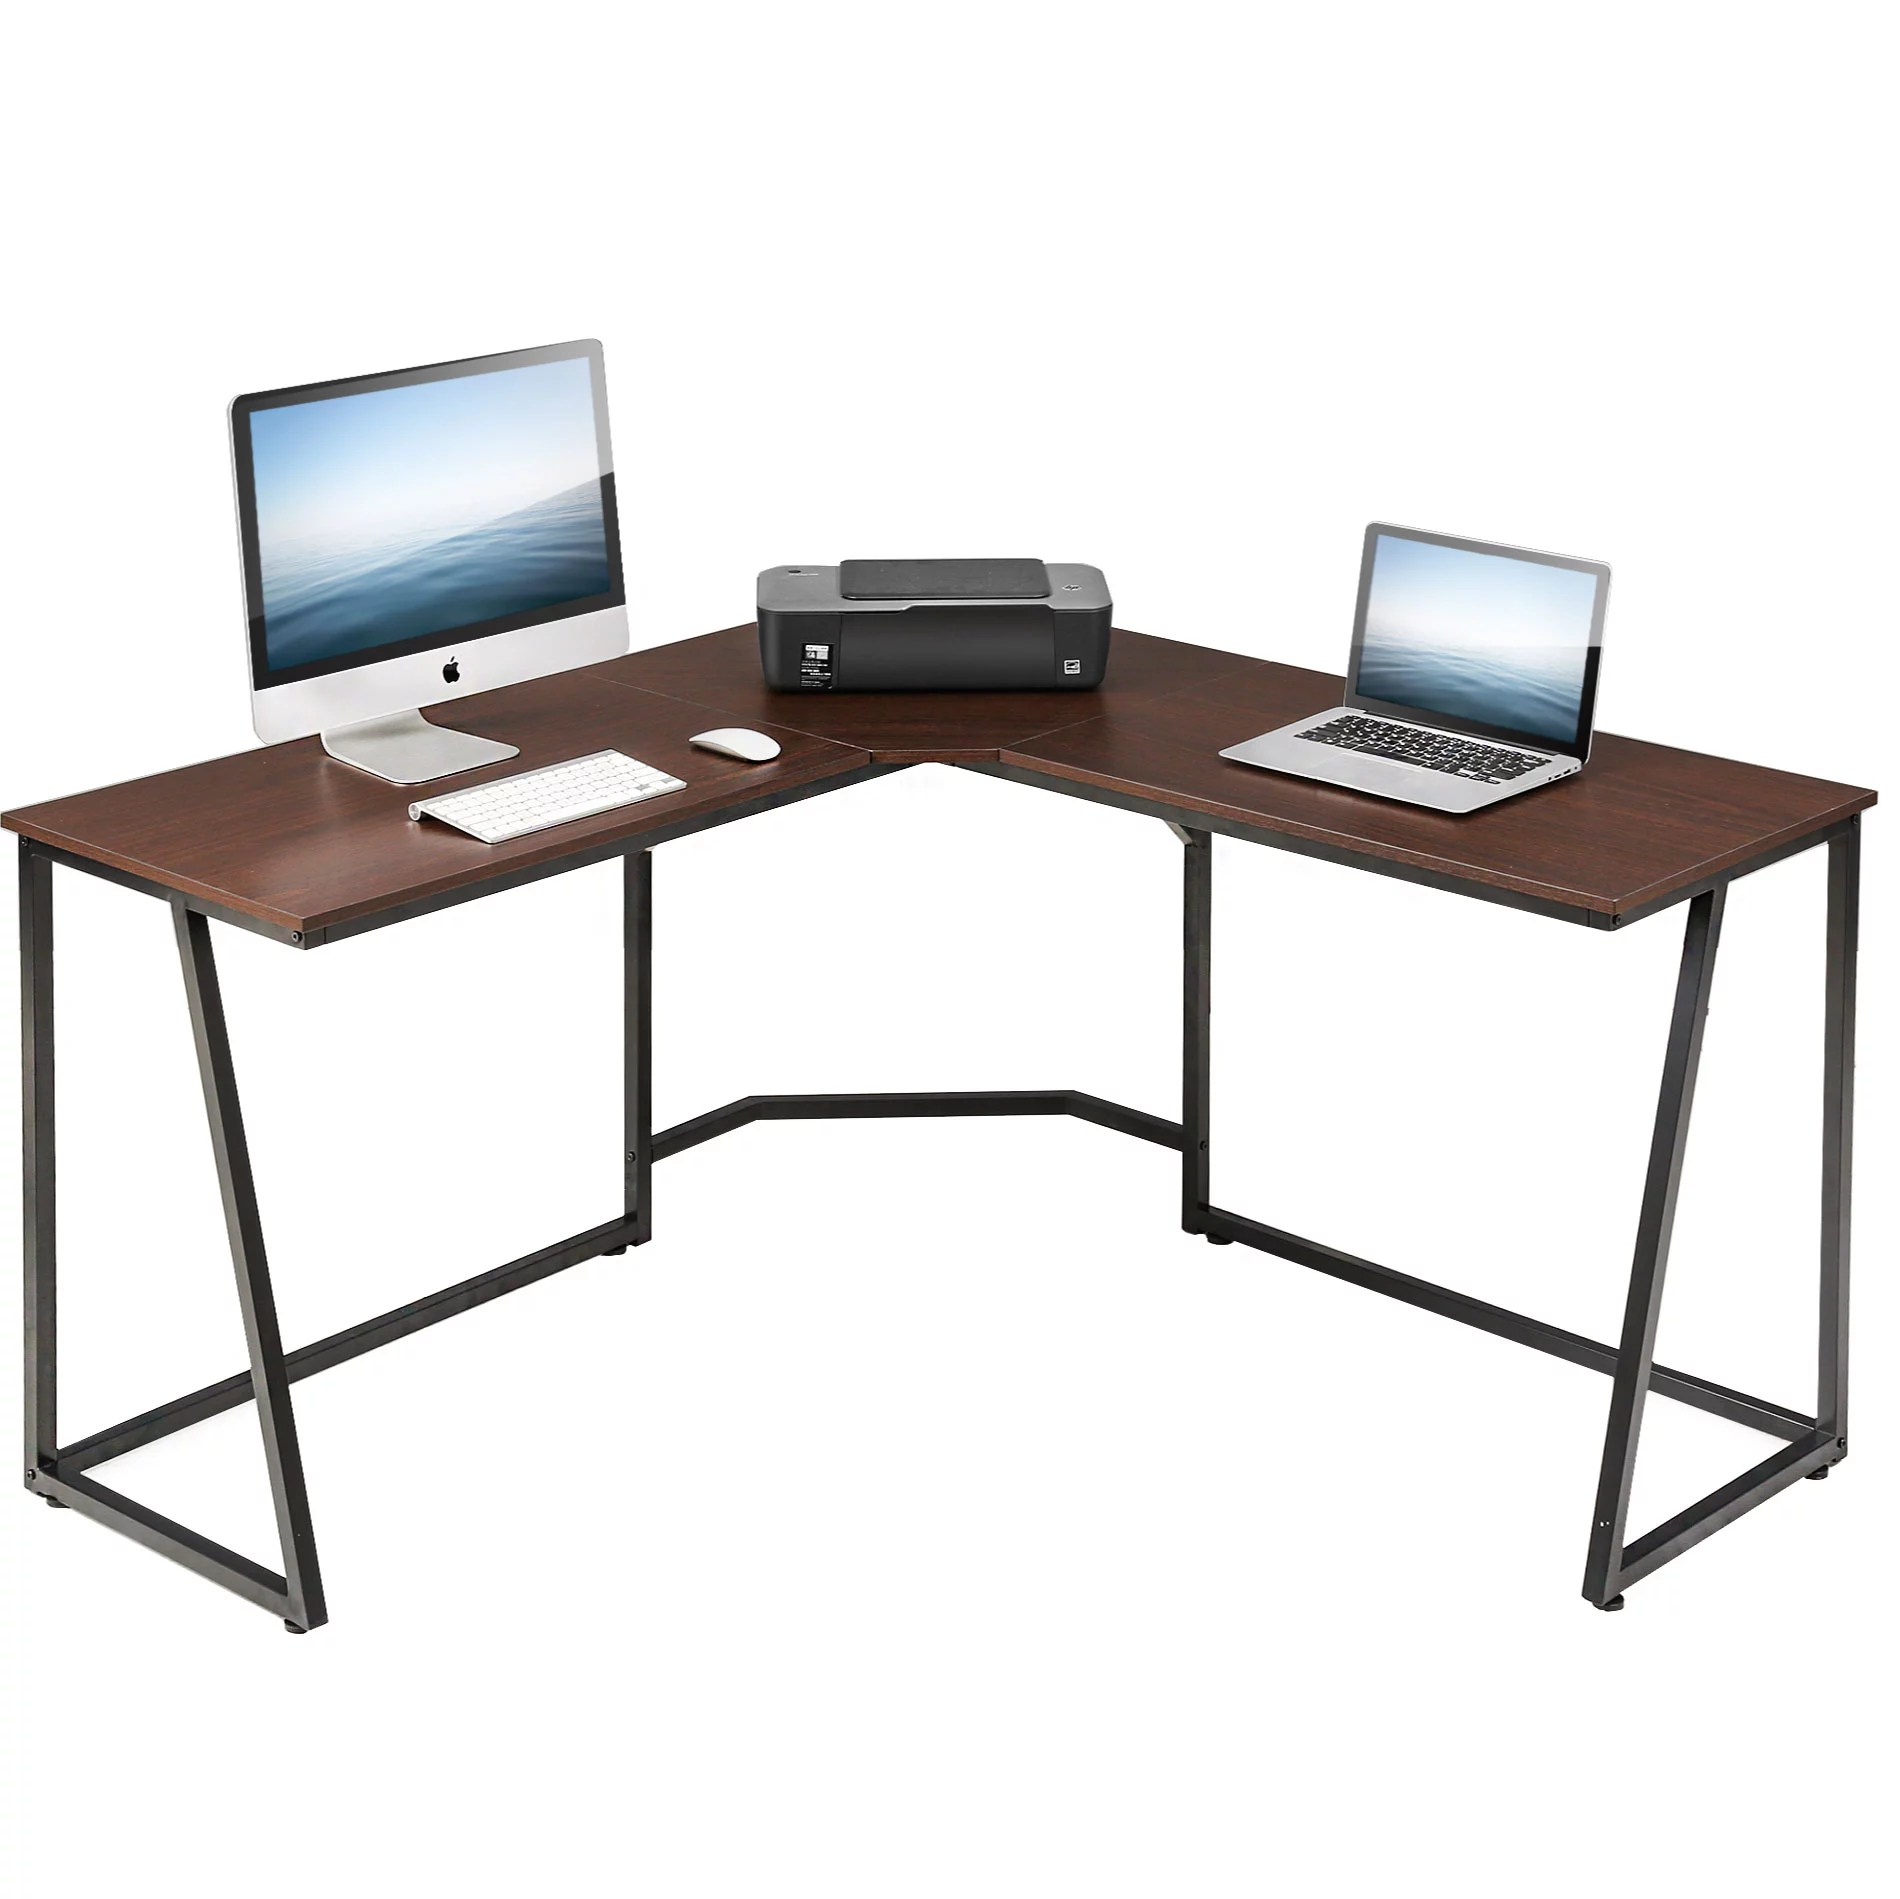 fitueyes l shaped desk corner pc laptop gaming table workstation for home office lcd114001we